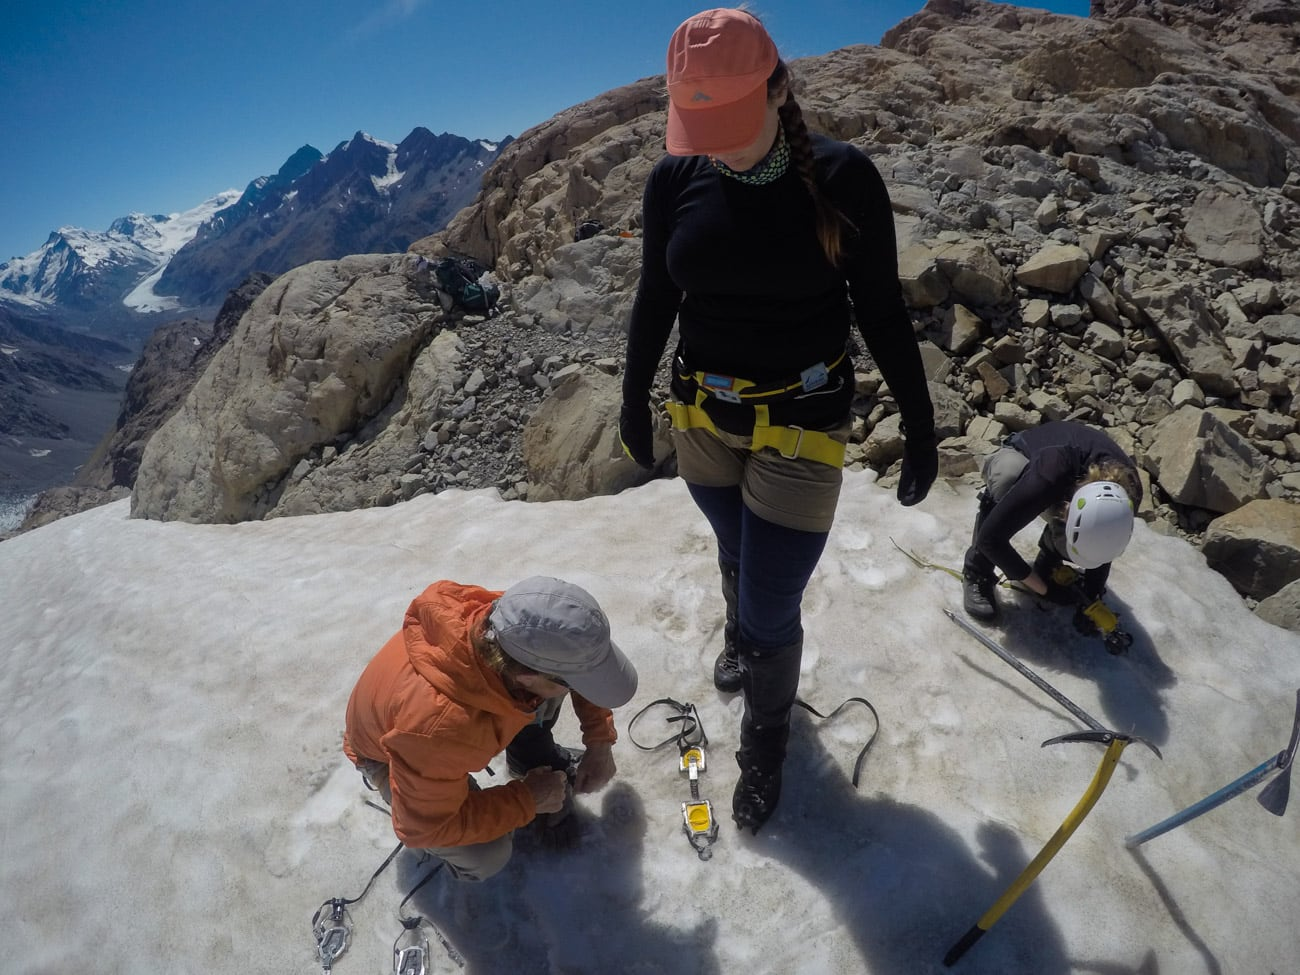 During my New Zealand trip, I took a 4-day intro to mountaineering course on Mount Cook with Alpine Recreation. We learned how to wear crampons, use an ice axe, and safely cross a glacier. Read my review and get the full details on the course.